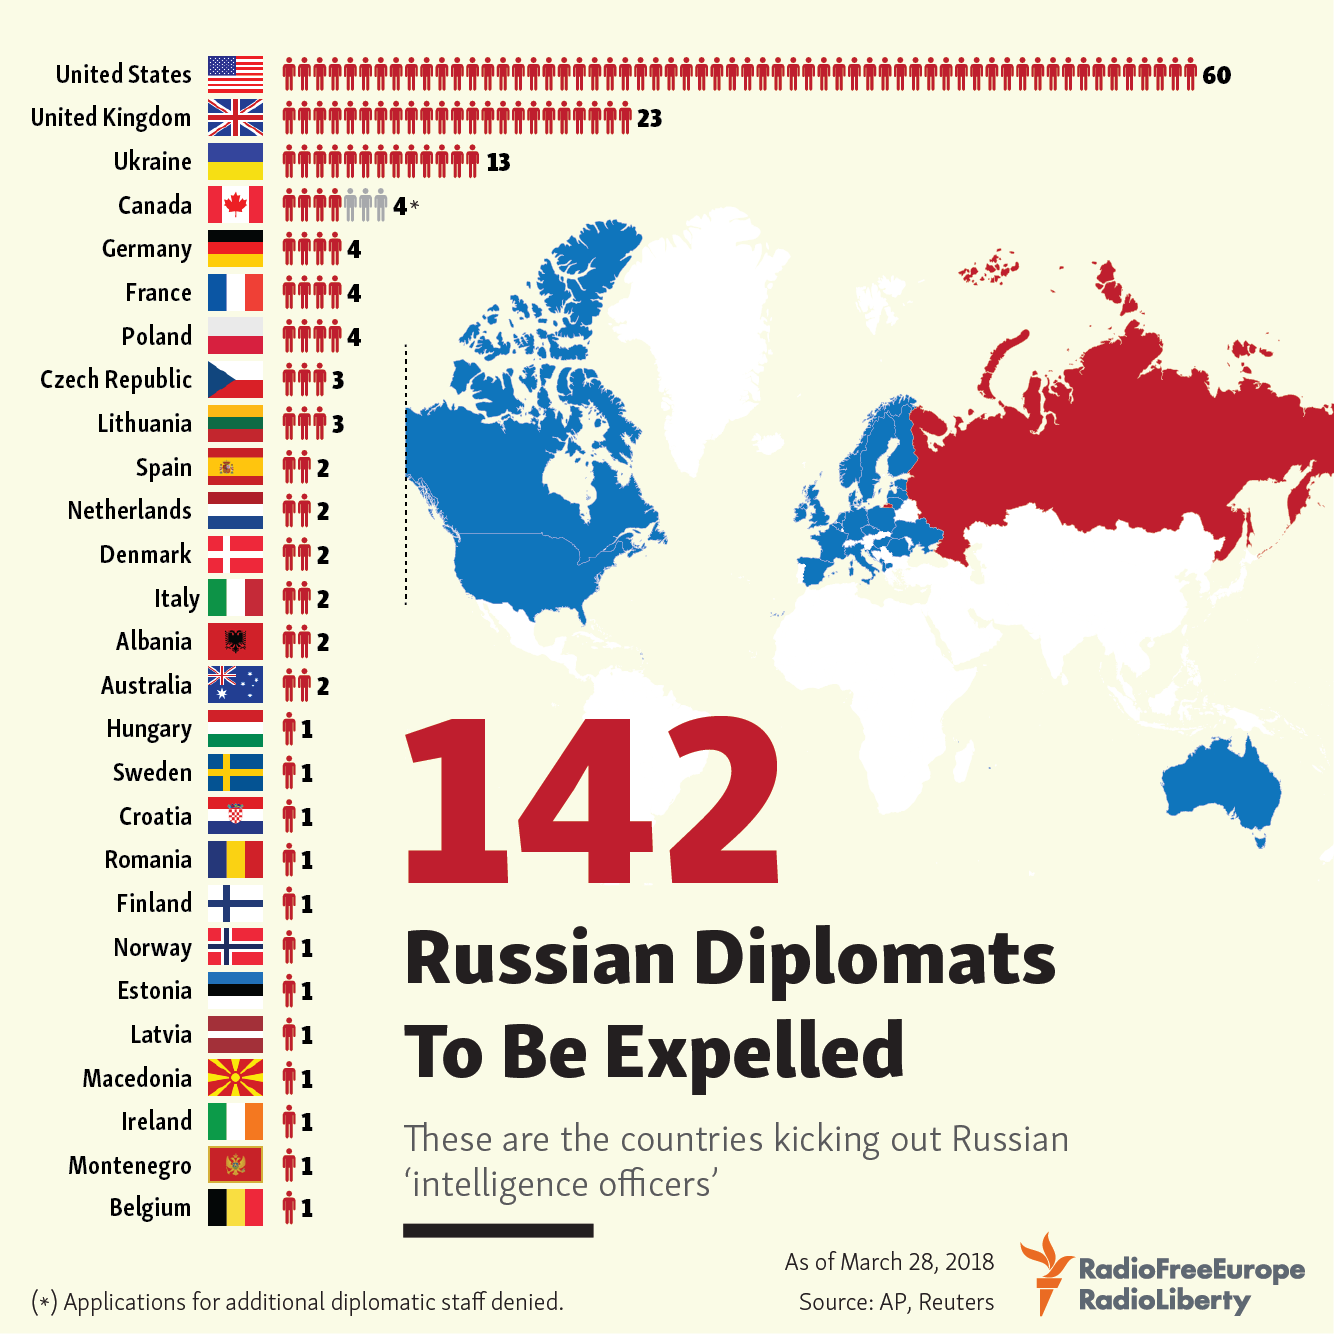 Russia announced the expulsion of diplomats from several countries